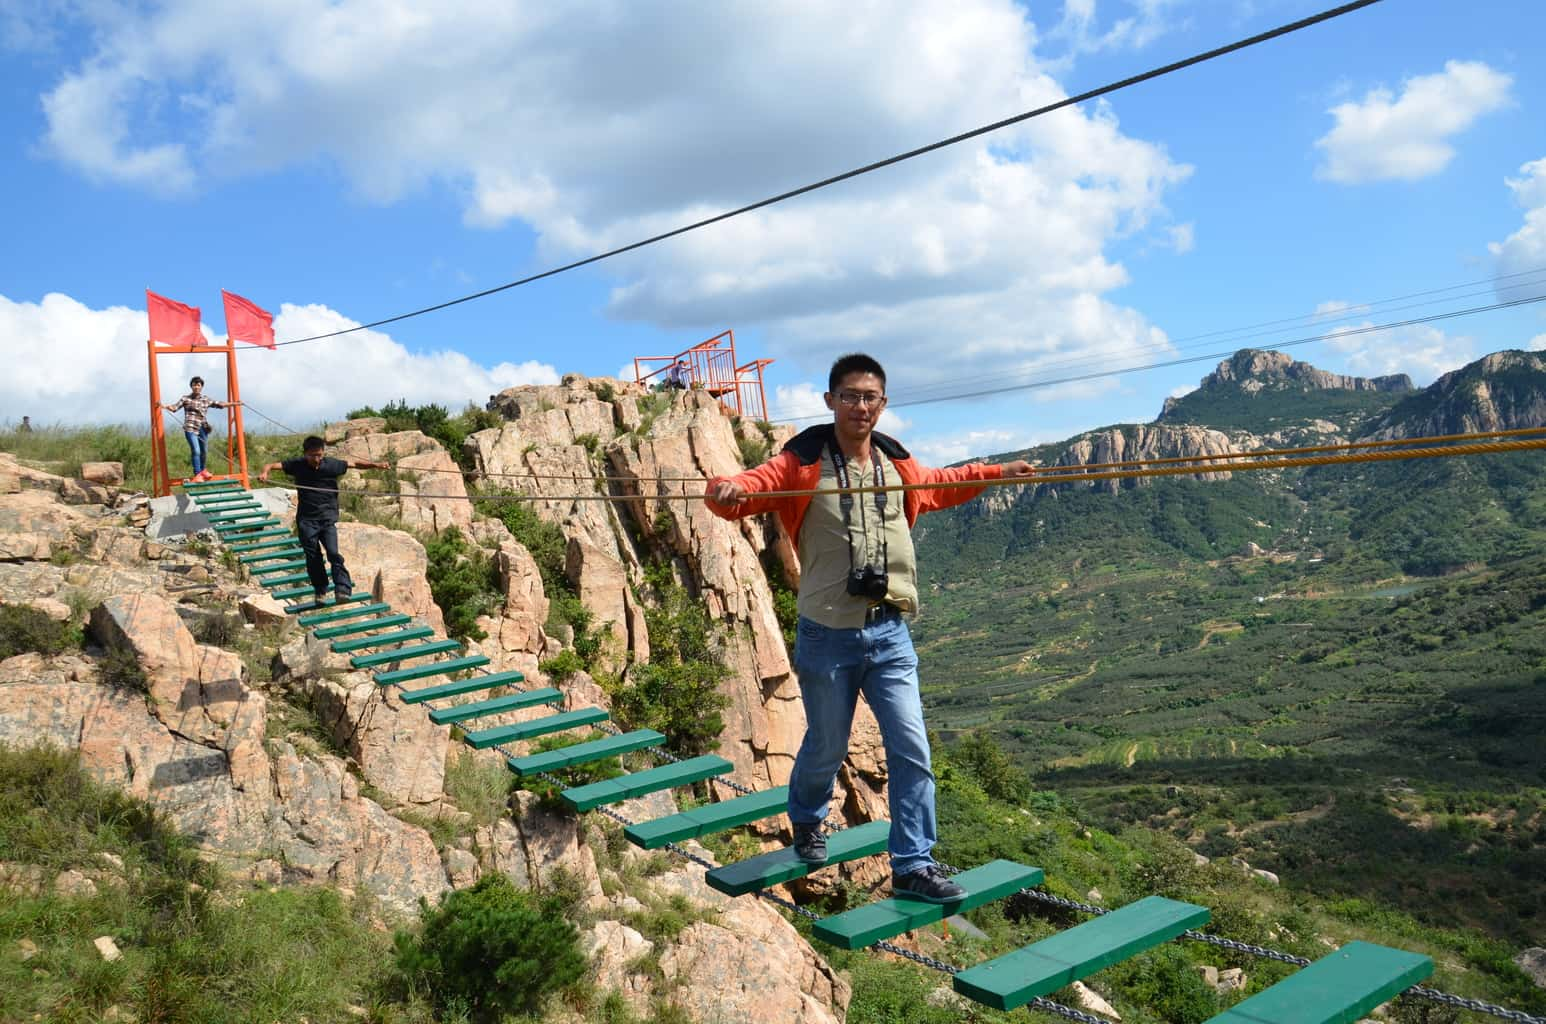 WWOOF CHINA – Exploring China From the Ground Up!